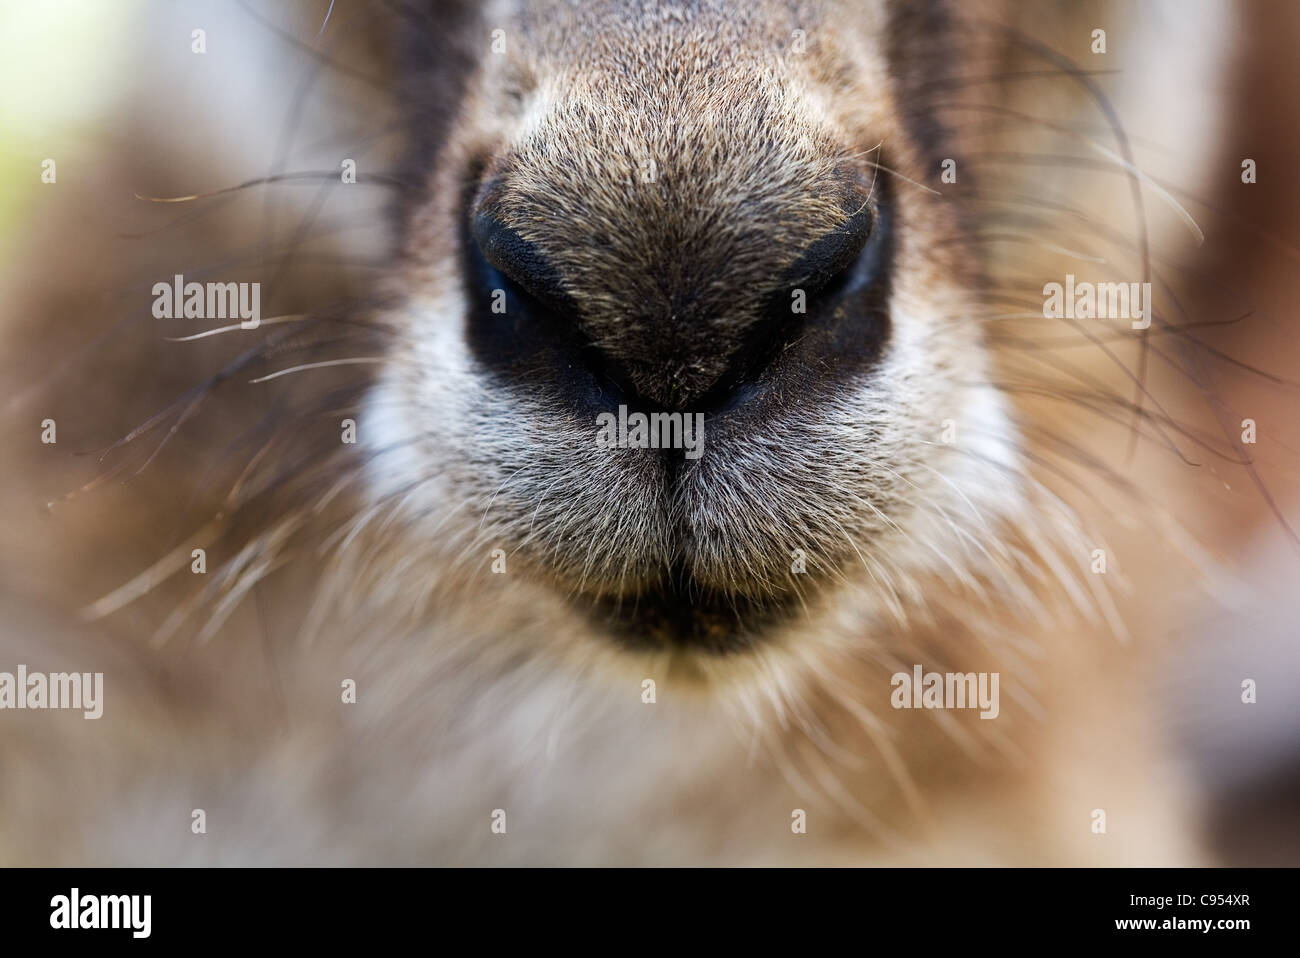 Close-up du nez d'un kangourou gris (Macropus giganteus). Brisbane, Queensland, Australie. Photo Stock